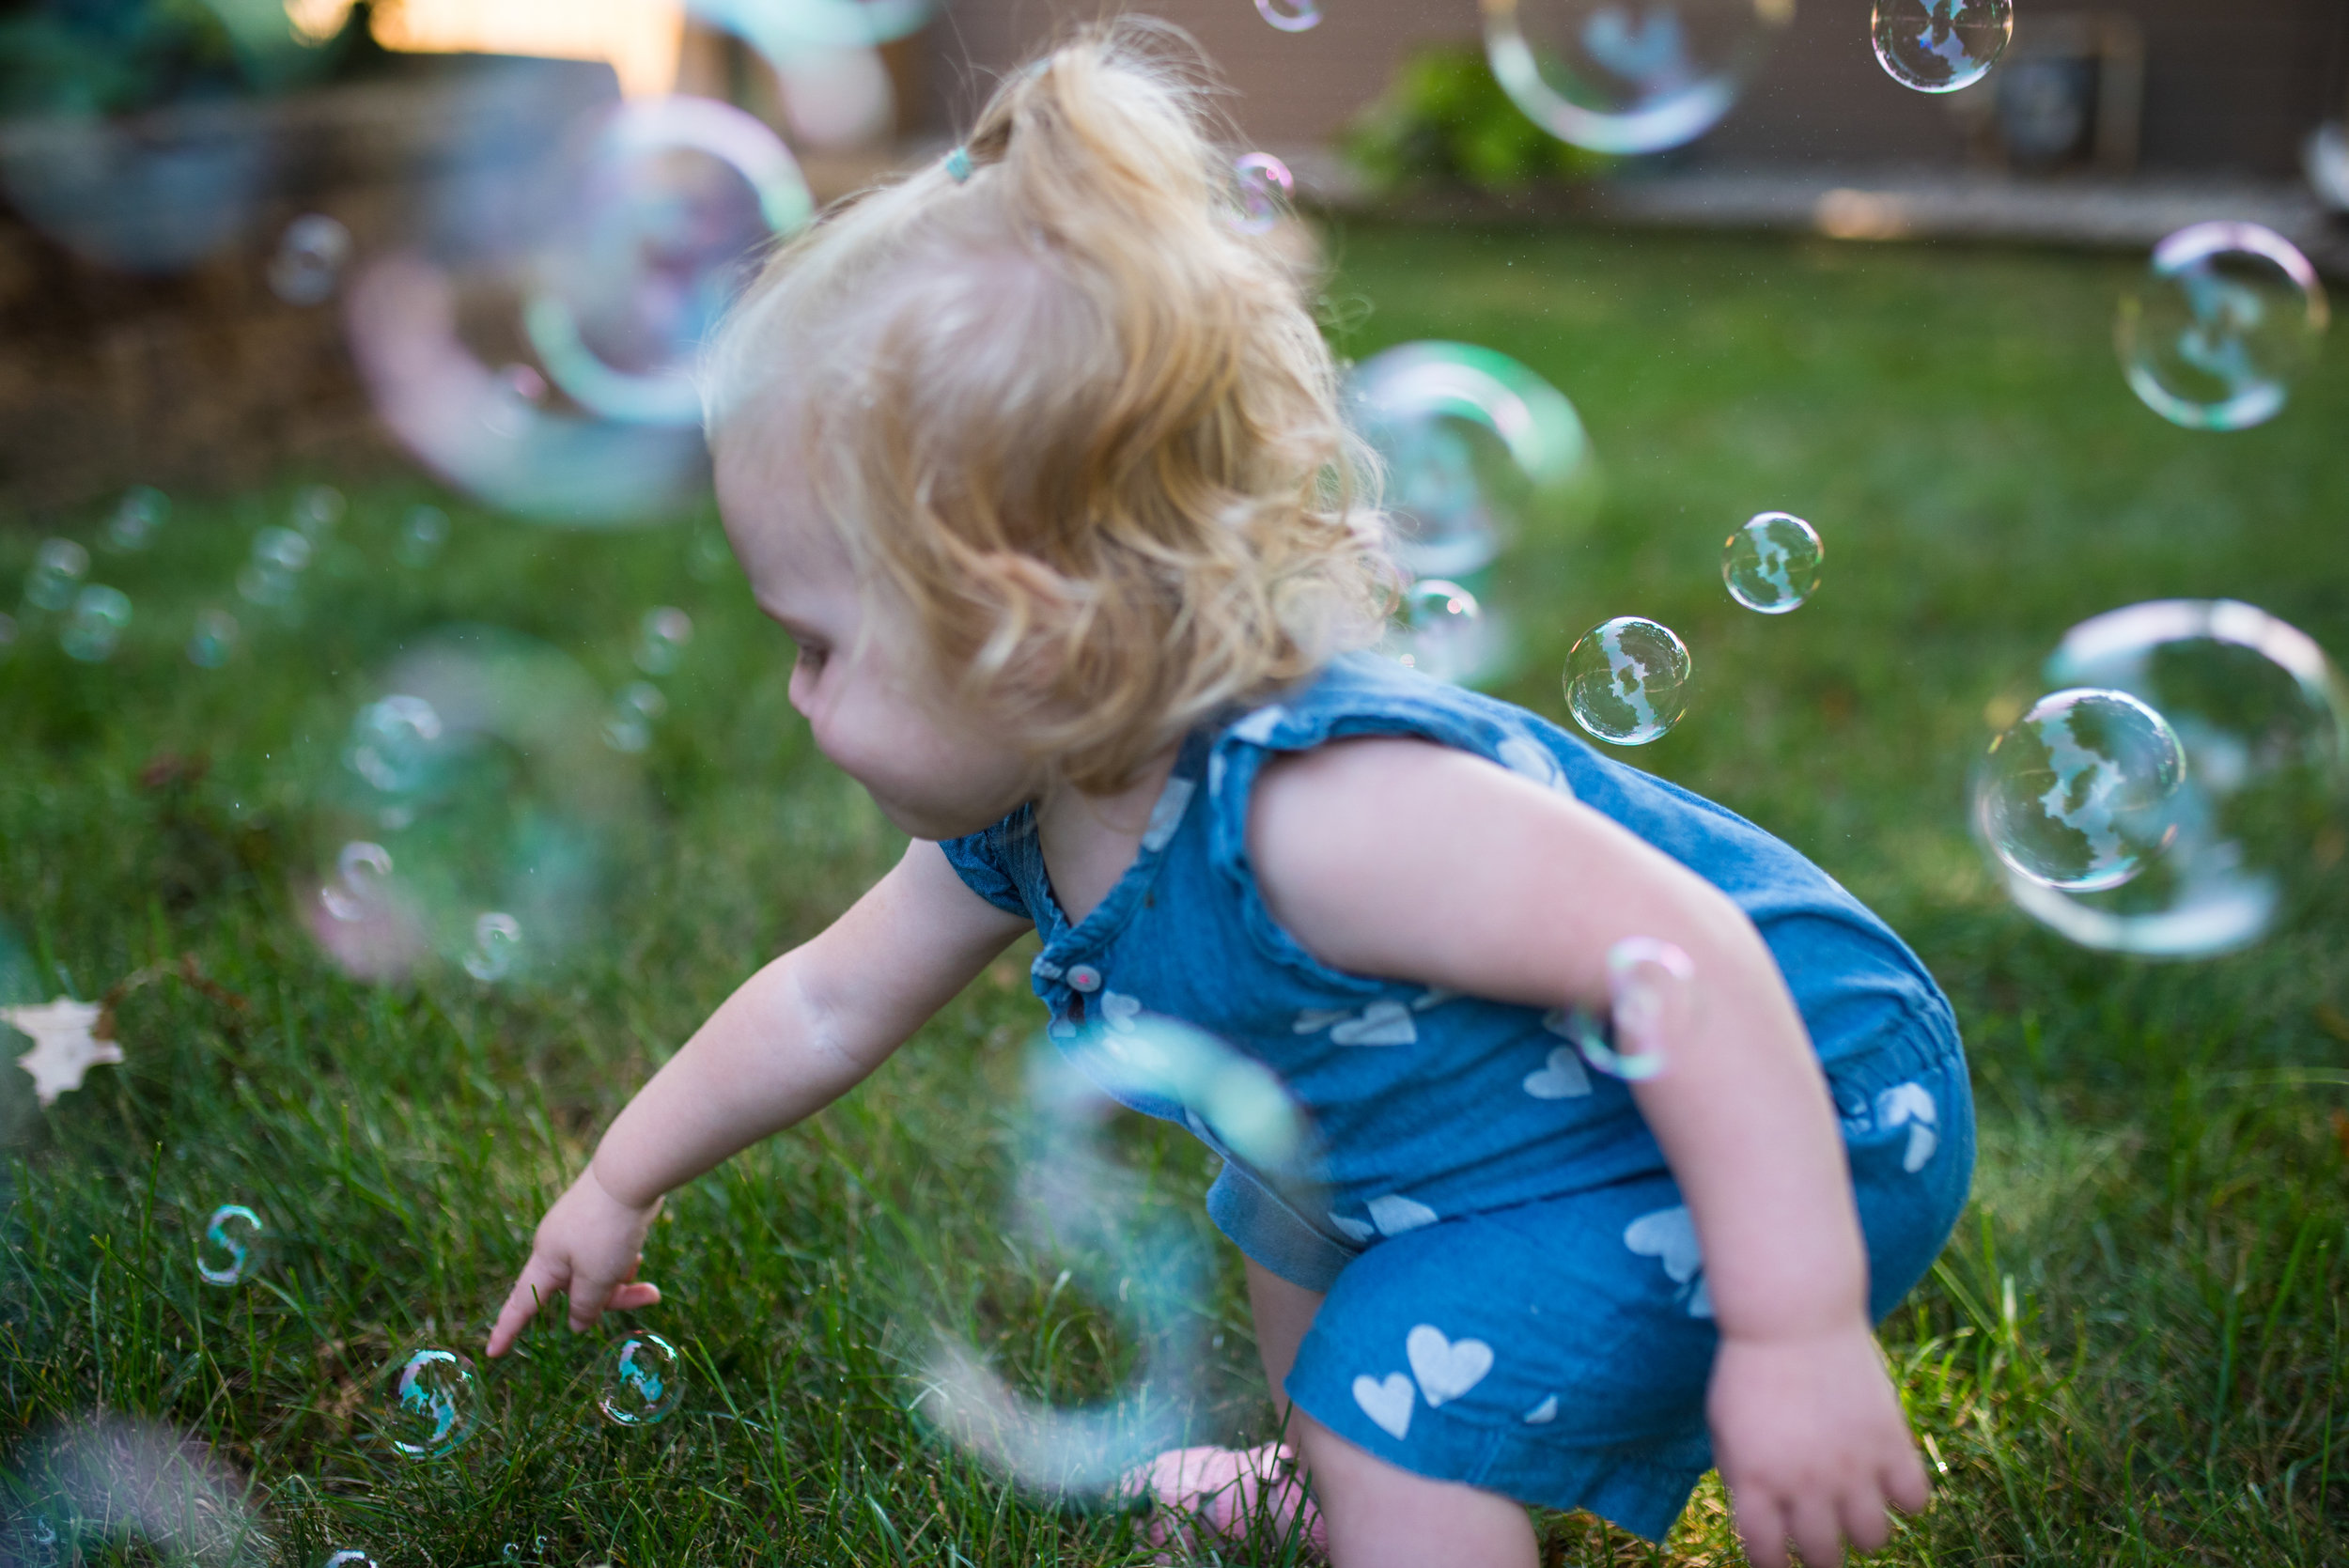 Toddler girl trying to poke bubbles in the grass